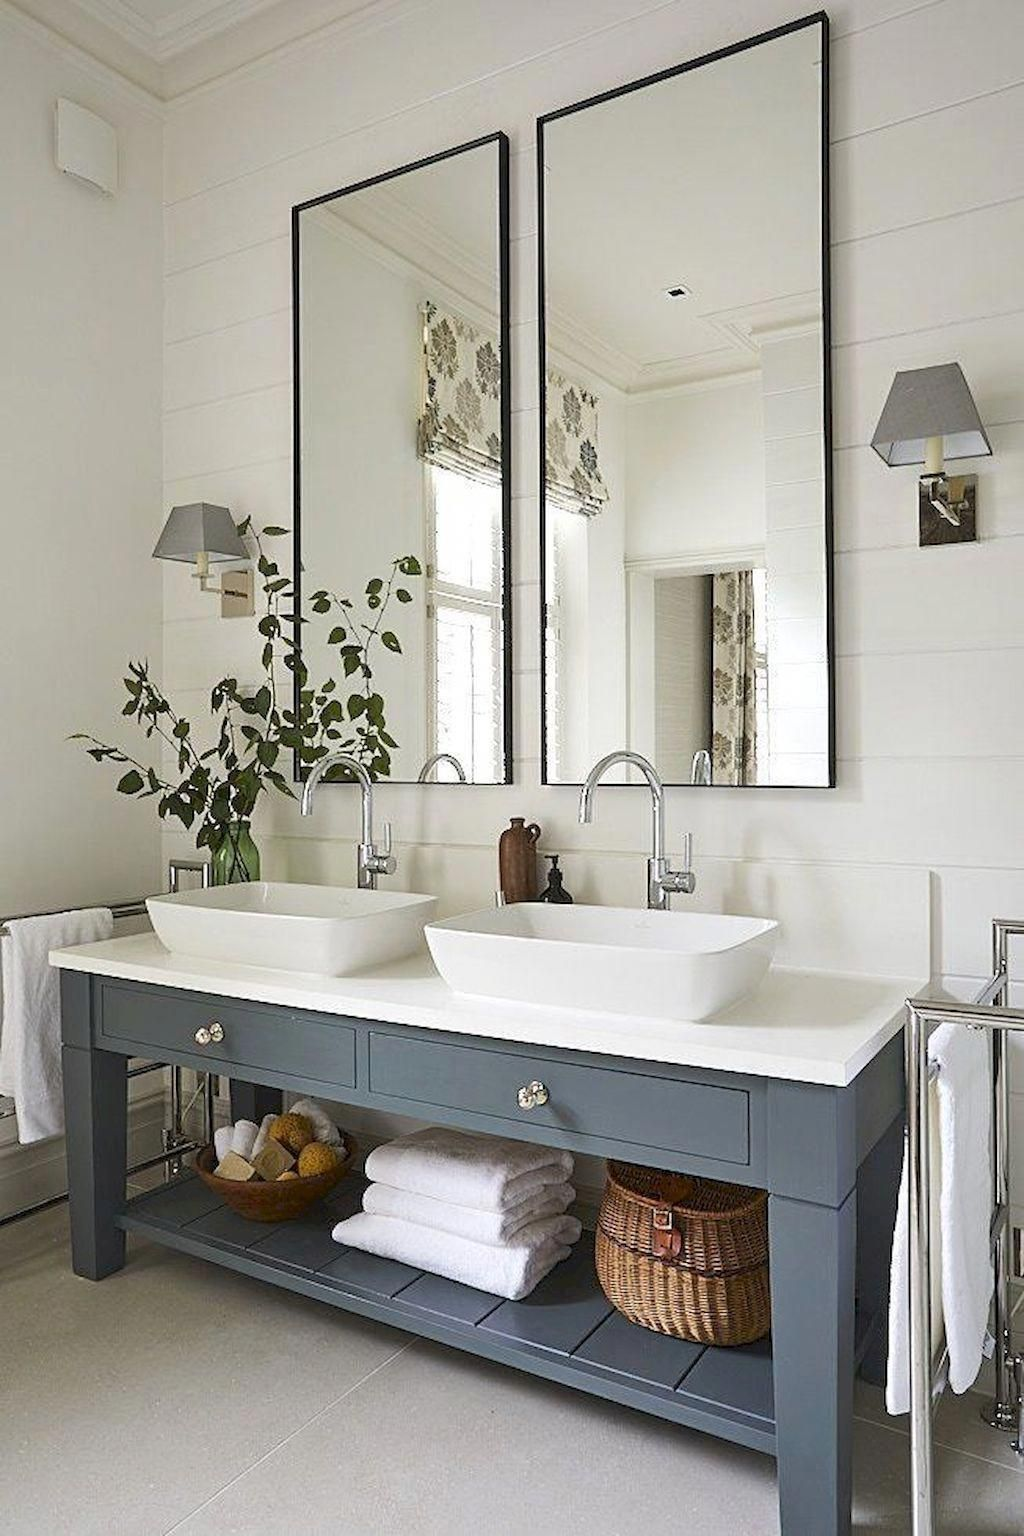 Informationen Zu Bathroom Remodel Australia Bathroomremodelbathtub Elegantba New In 2020 Bathroom Renovation Designs Modern Farmhouse Bathroom Bathroom Styling